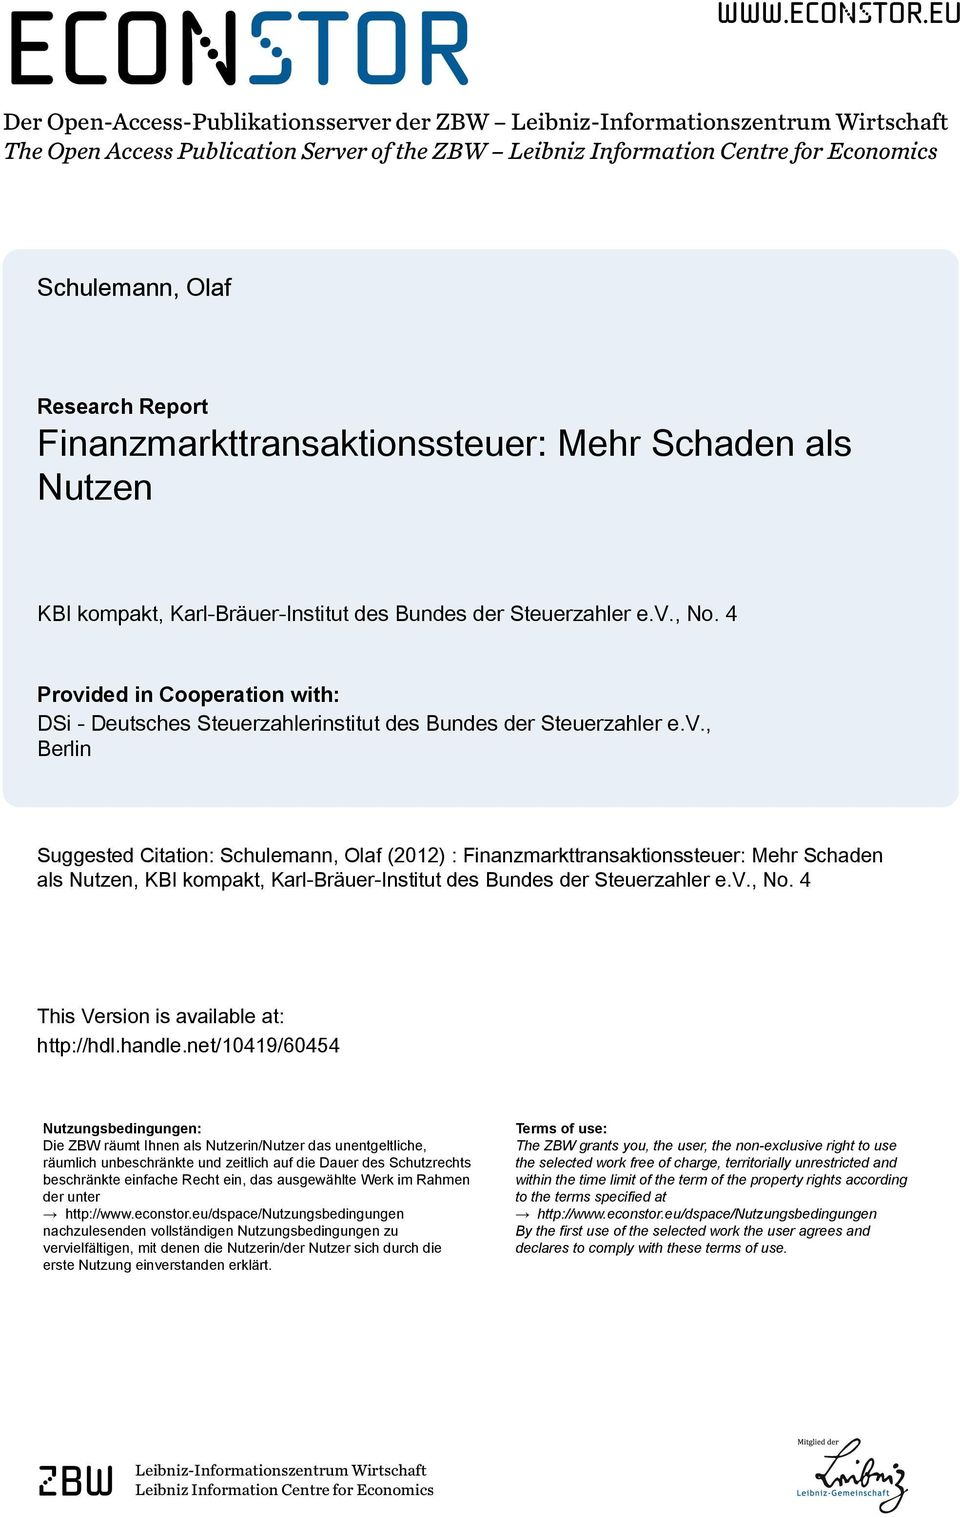 eu Der Open-Access-Publikationsserver der ZBW Leibniz-Informationszentrum Wirtschaft The Open Access Publication Server of the ZBW Leibniz Information Centre for Economics Schulemann, Olaf Research